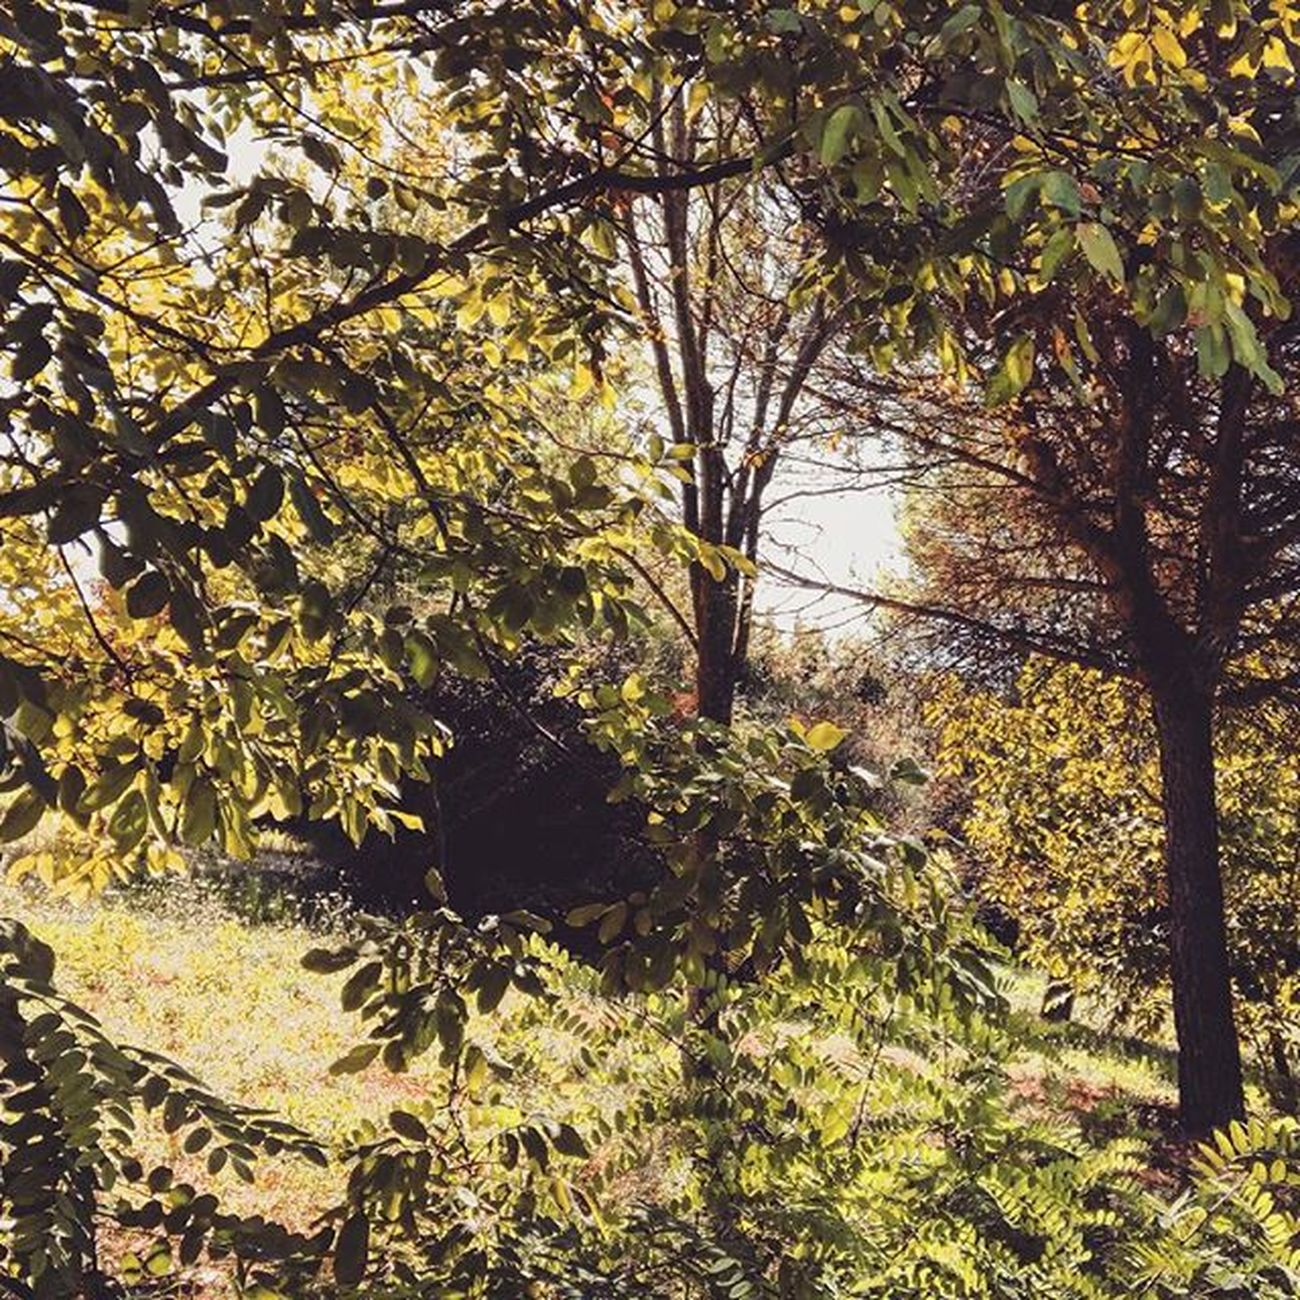 🌿 🌿 . . Leavesfalling Leaf Leaves Fall Autumn Fallcolors Autunno  Sun November Sunlight Sunshine Trees Parco Alberi Park Walk Yellowleaves Instanature Naturelovers NaturalBeauty Natura Nature Marche Liveloveitaly Italia igersitalia igersmarche igdaily igerseurope landscape